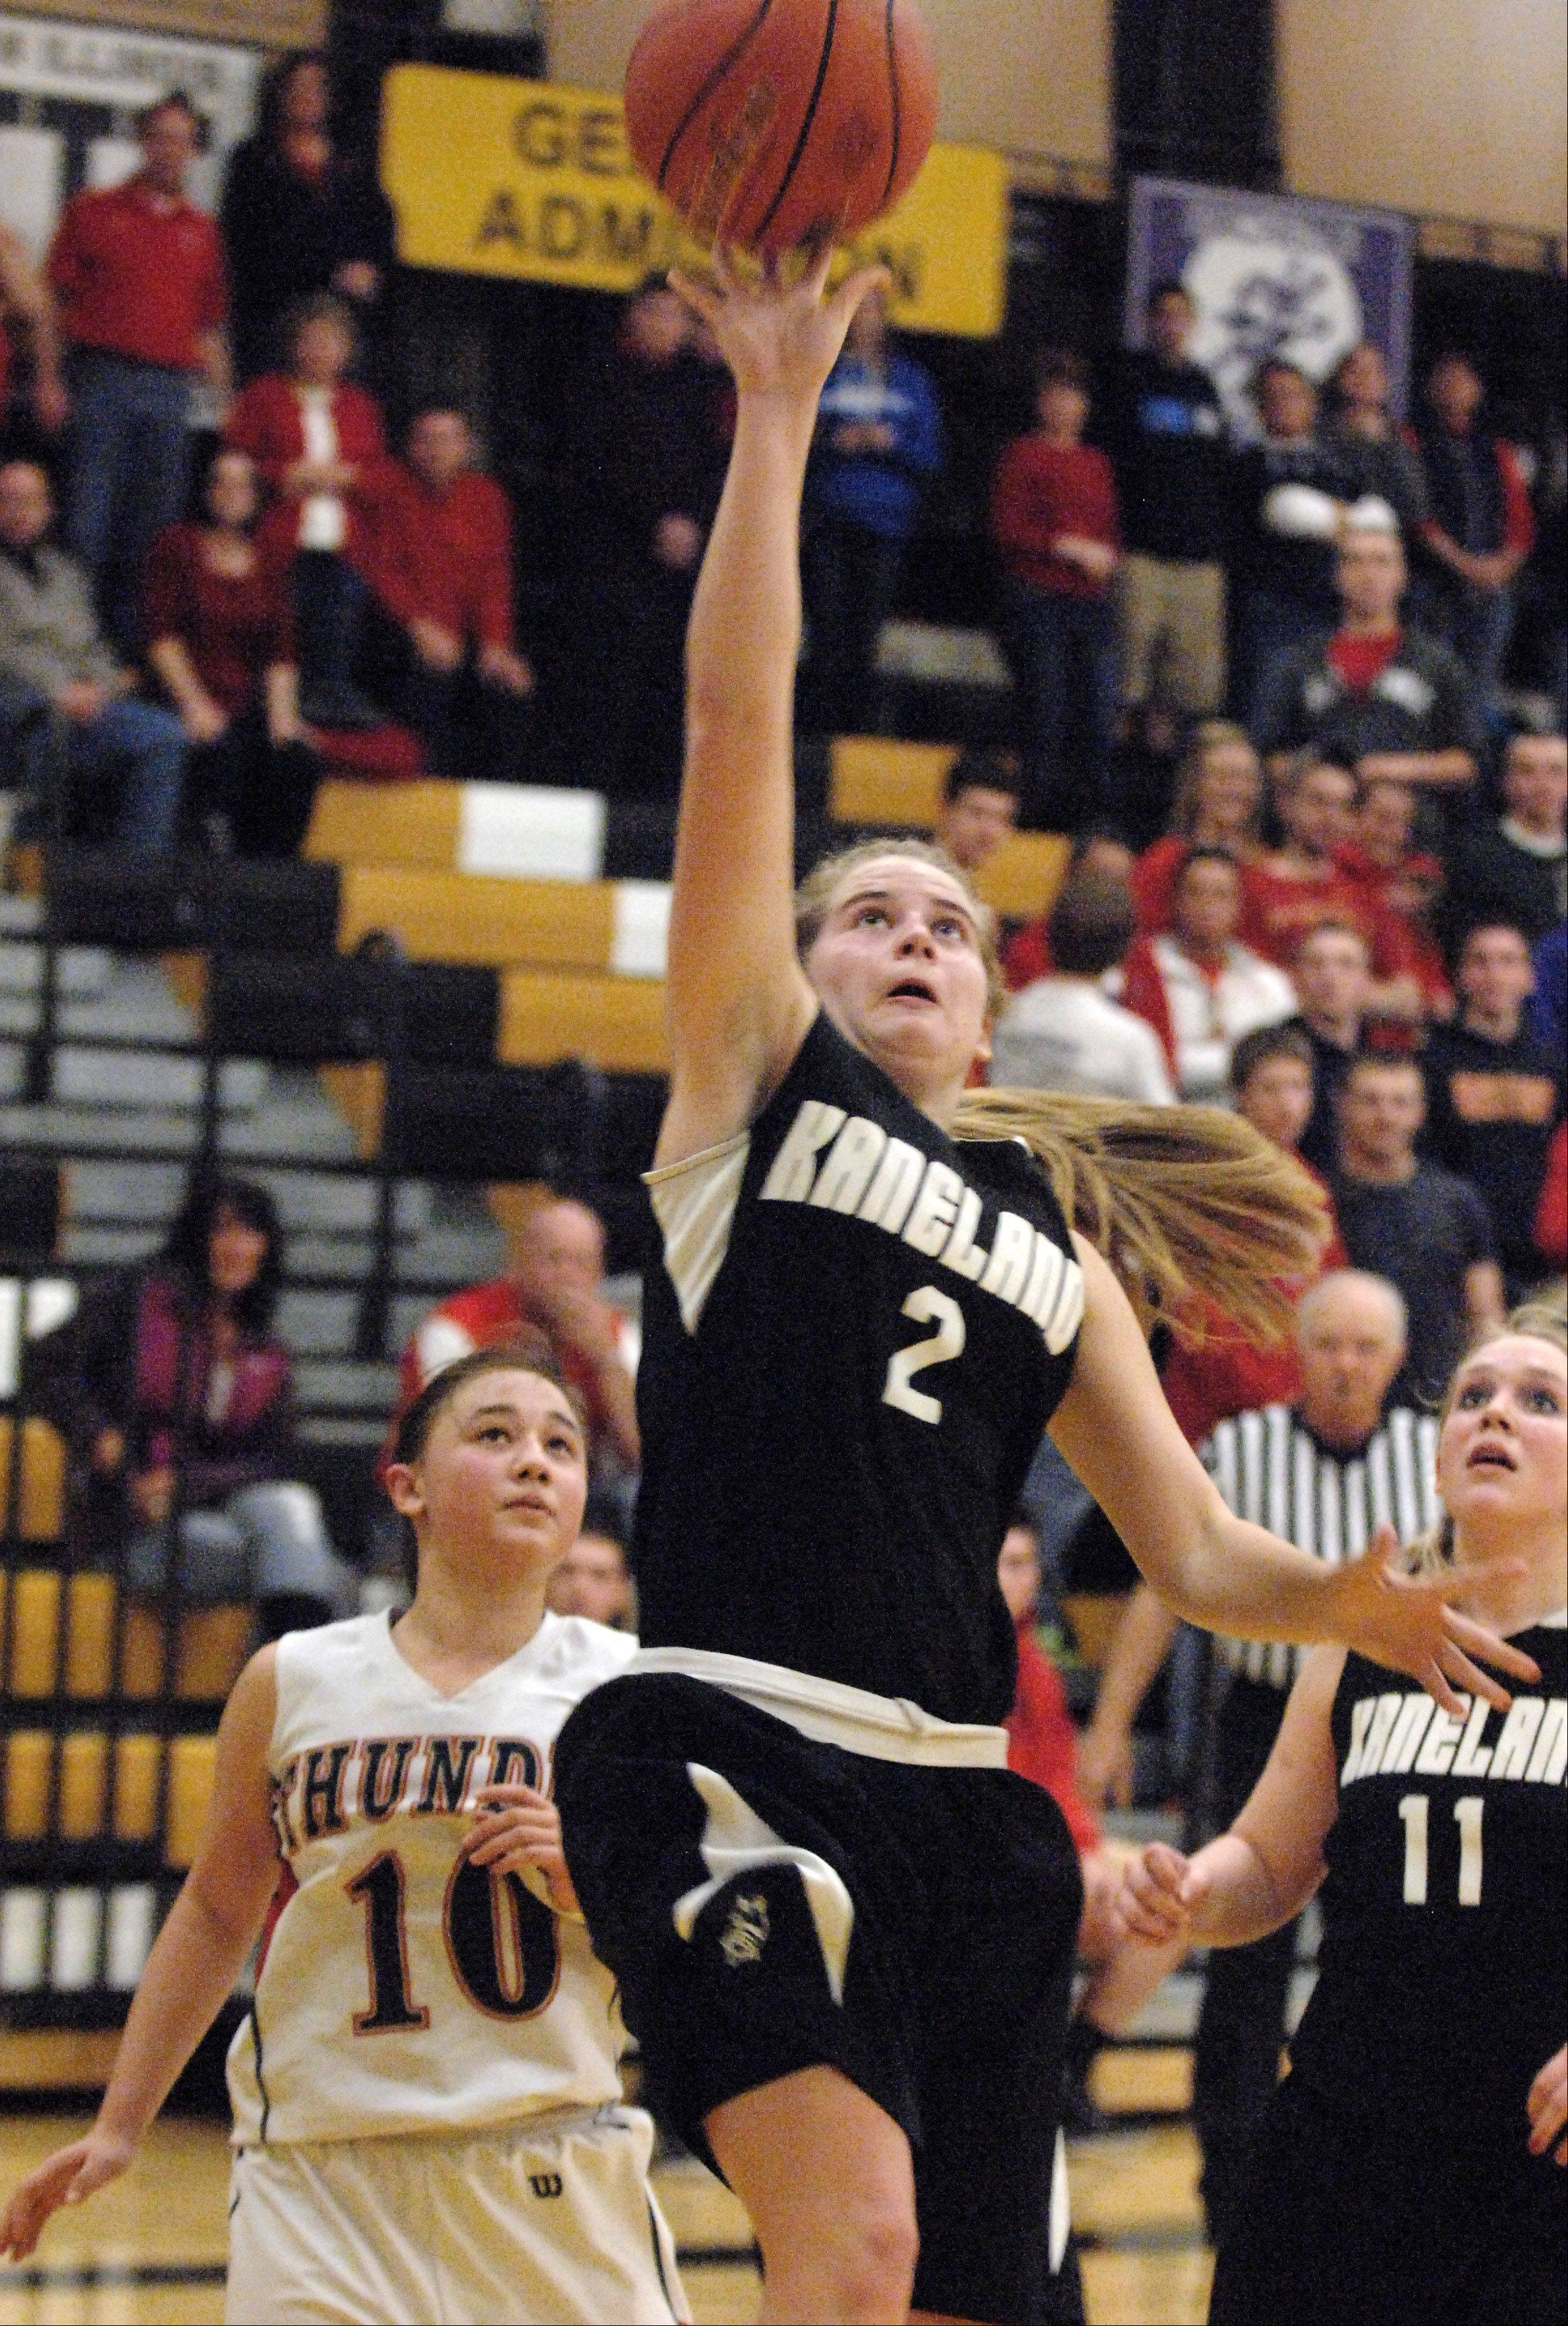 Kaneland's Sarah Grams drives and scores to close the gap in the final minutes.